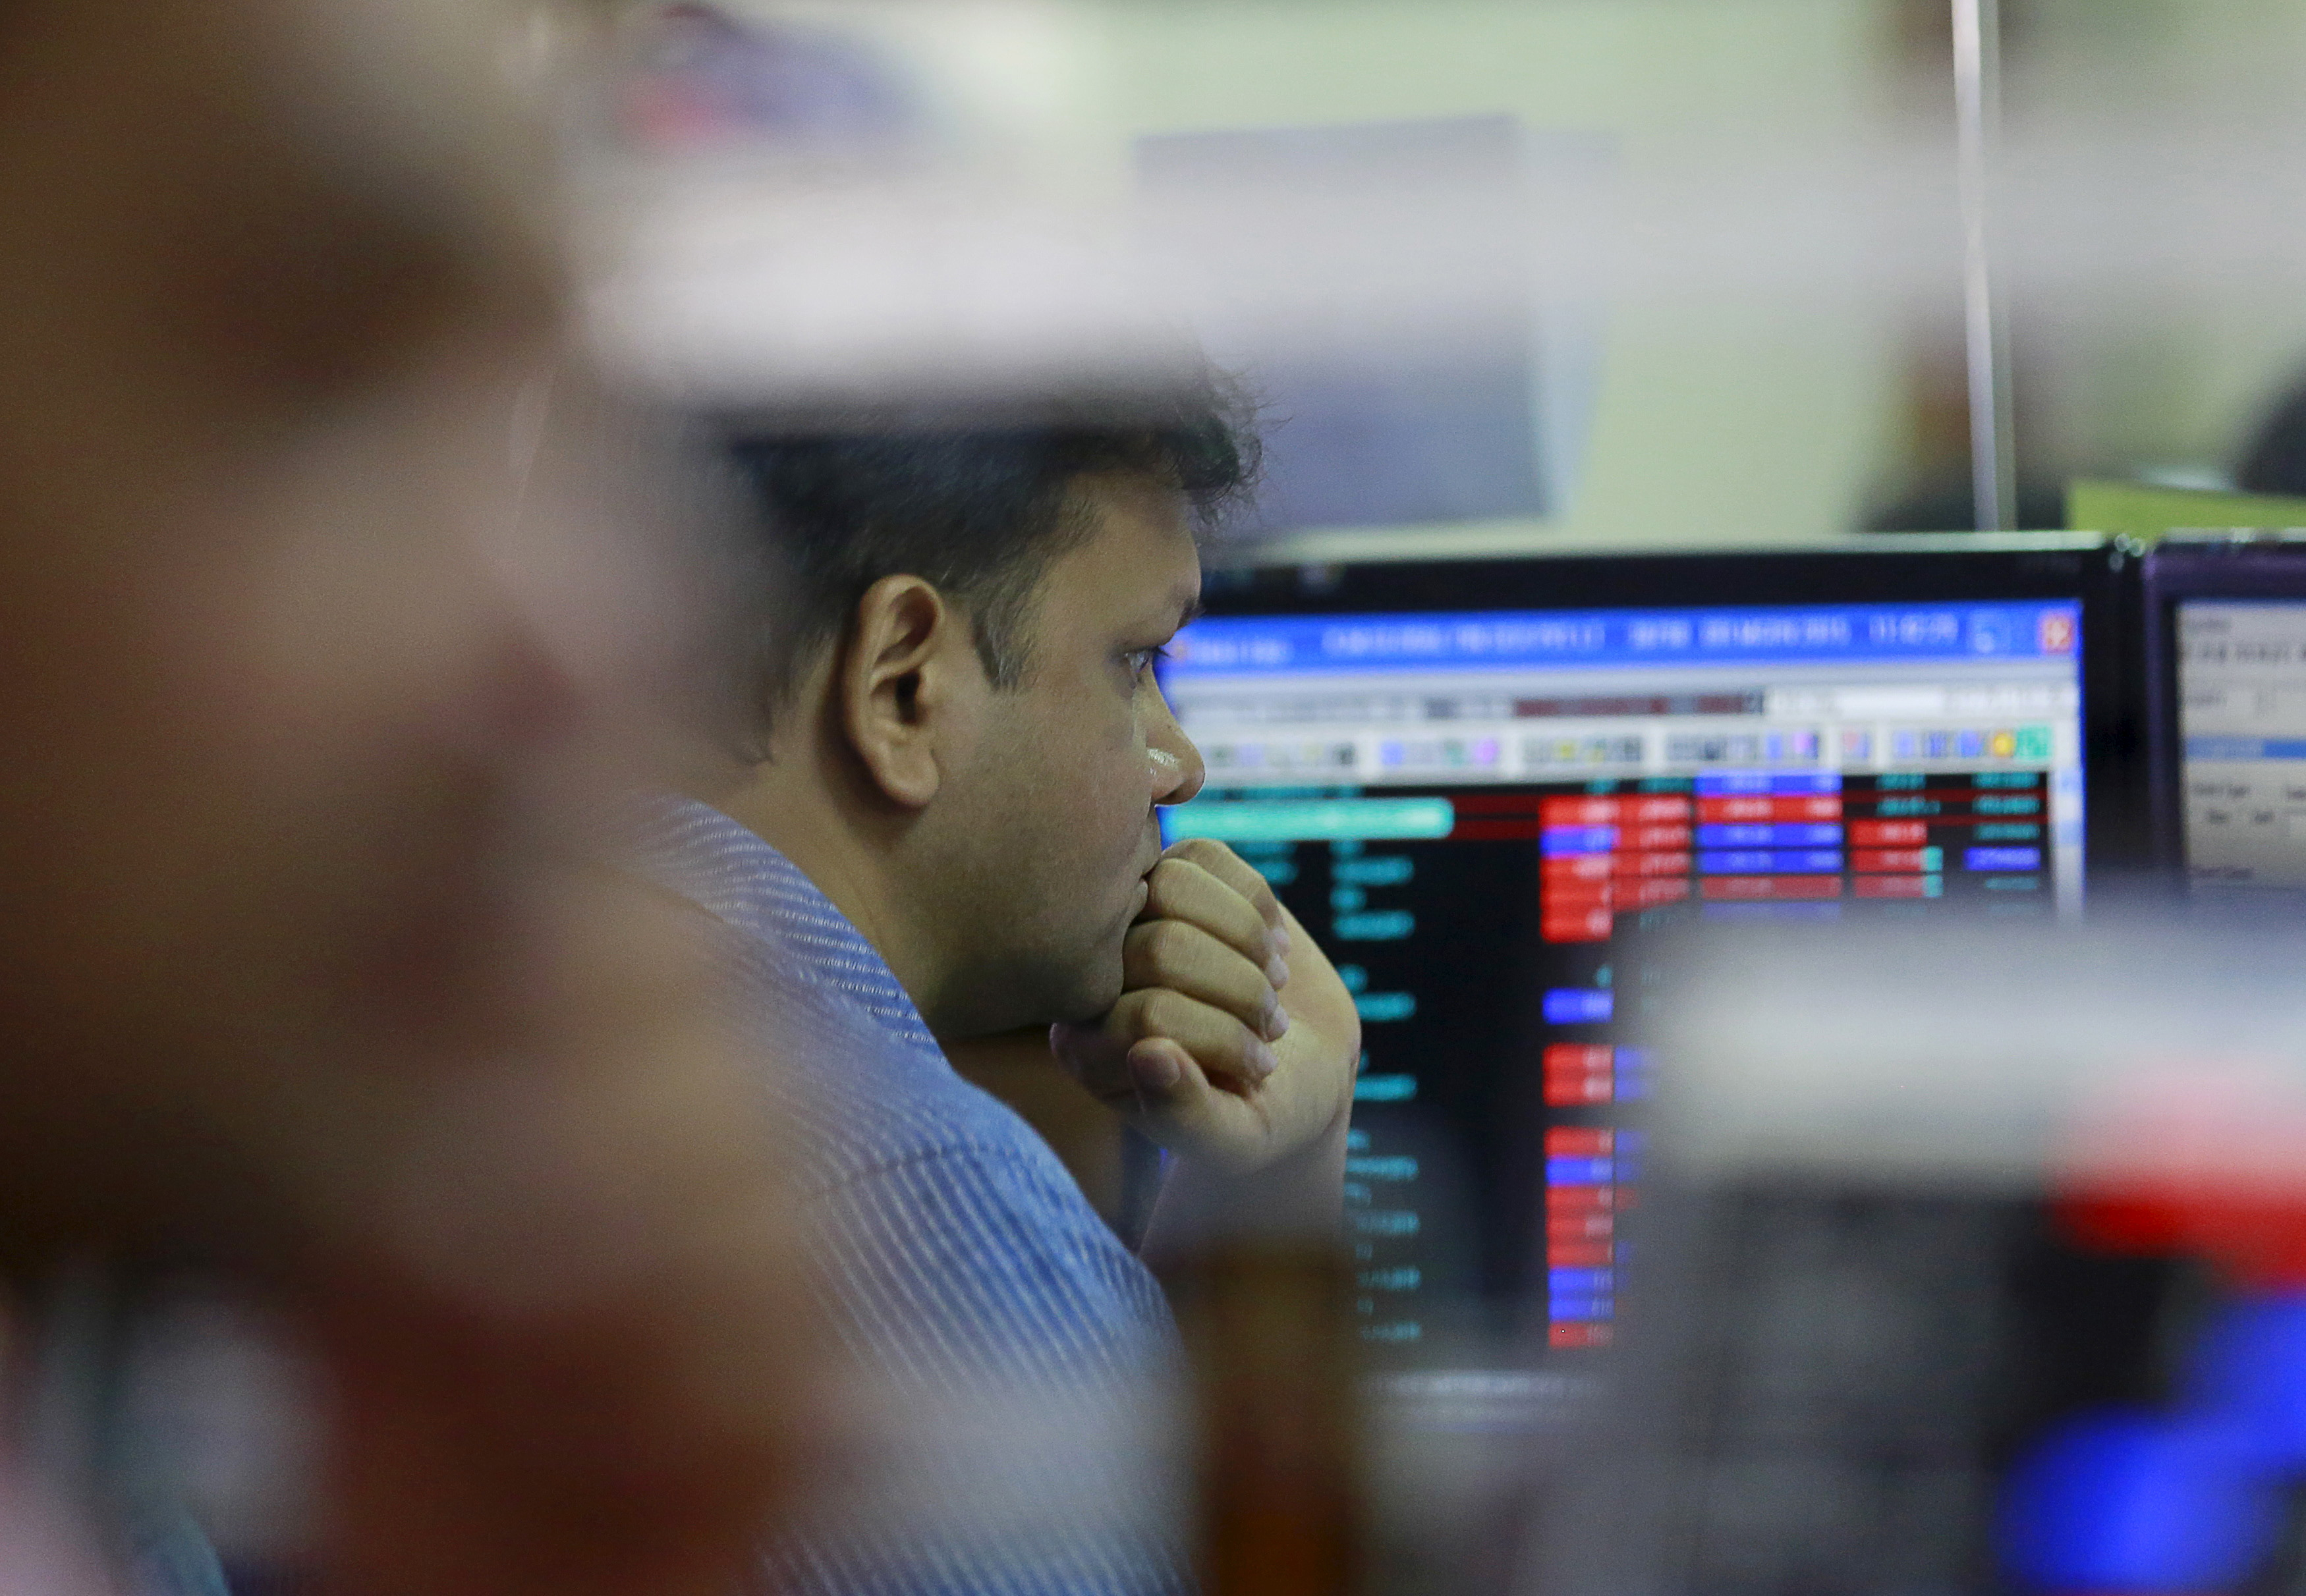 A broker reacts while trading at his computer terminal at a stock brokerage firm in Mumbai, India, June 29, 2015. REUTERS/Danish Siddiqui